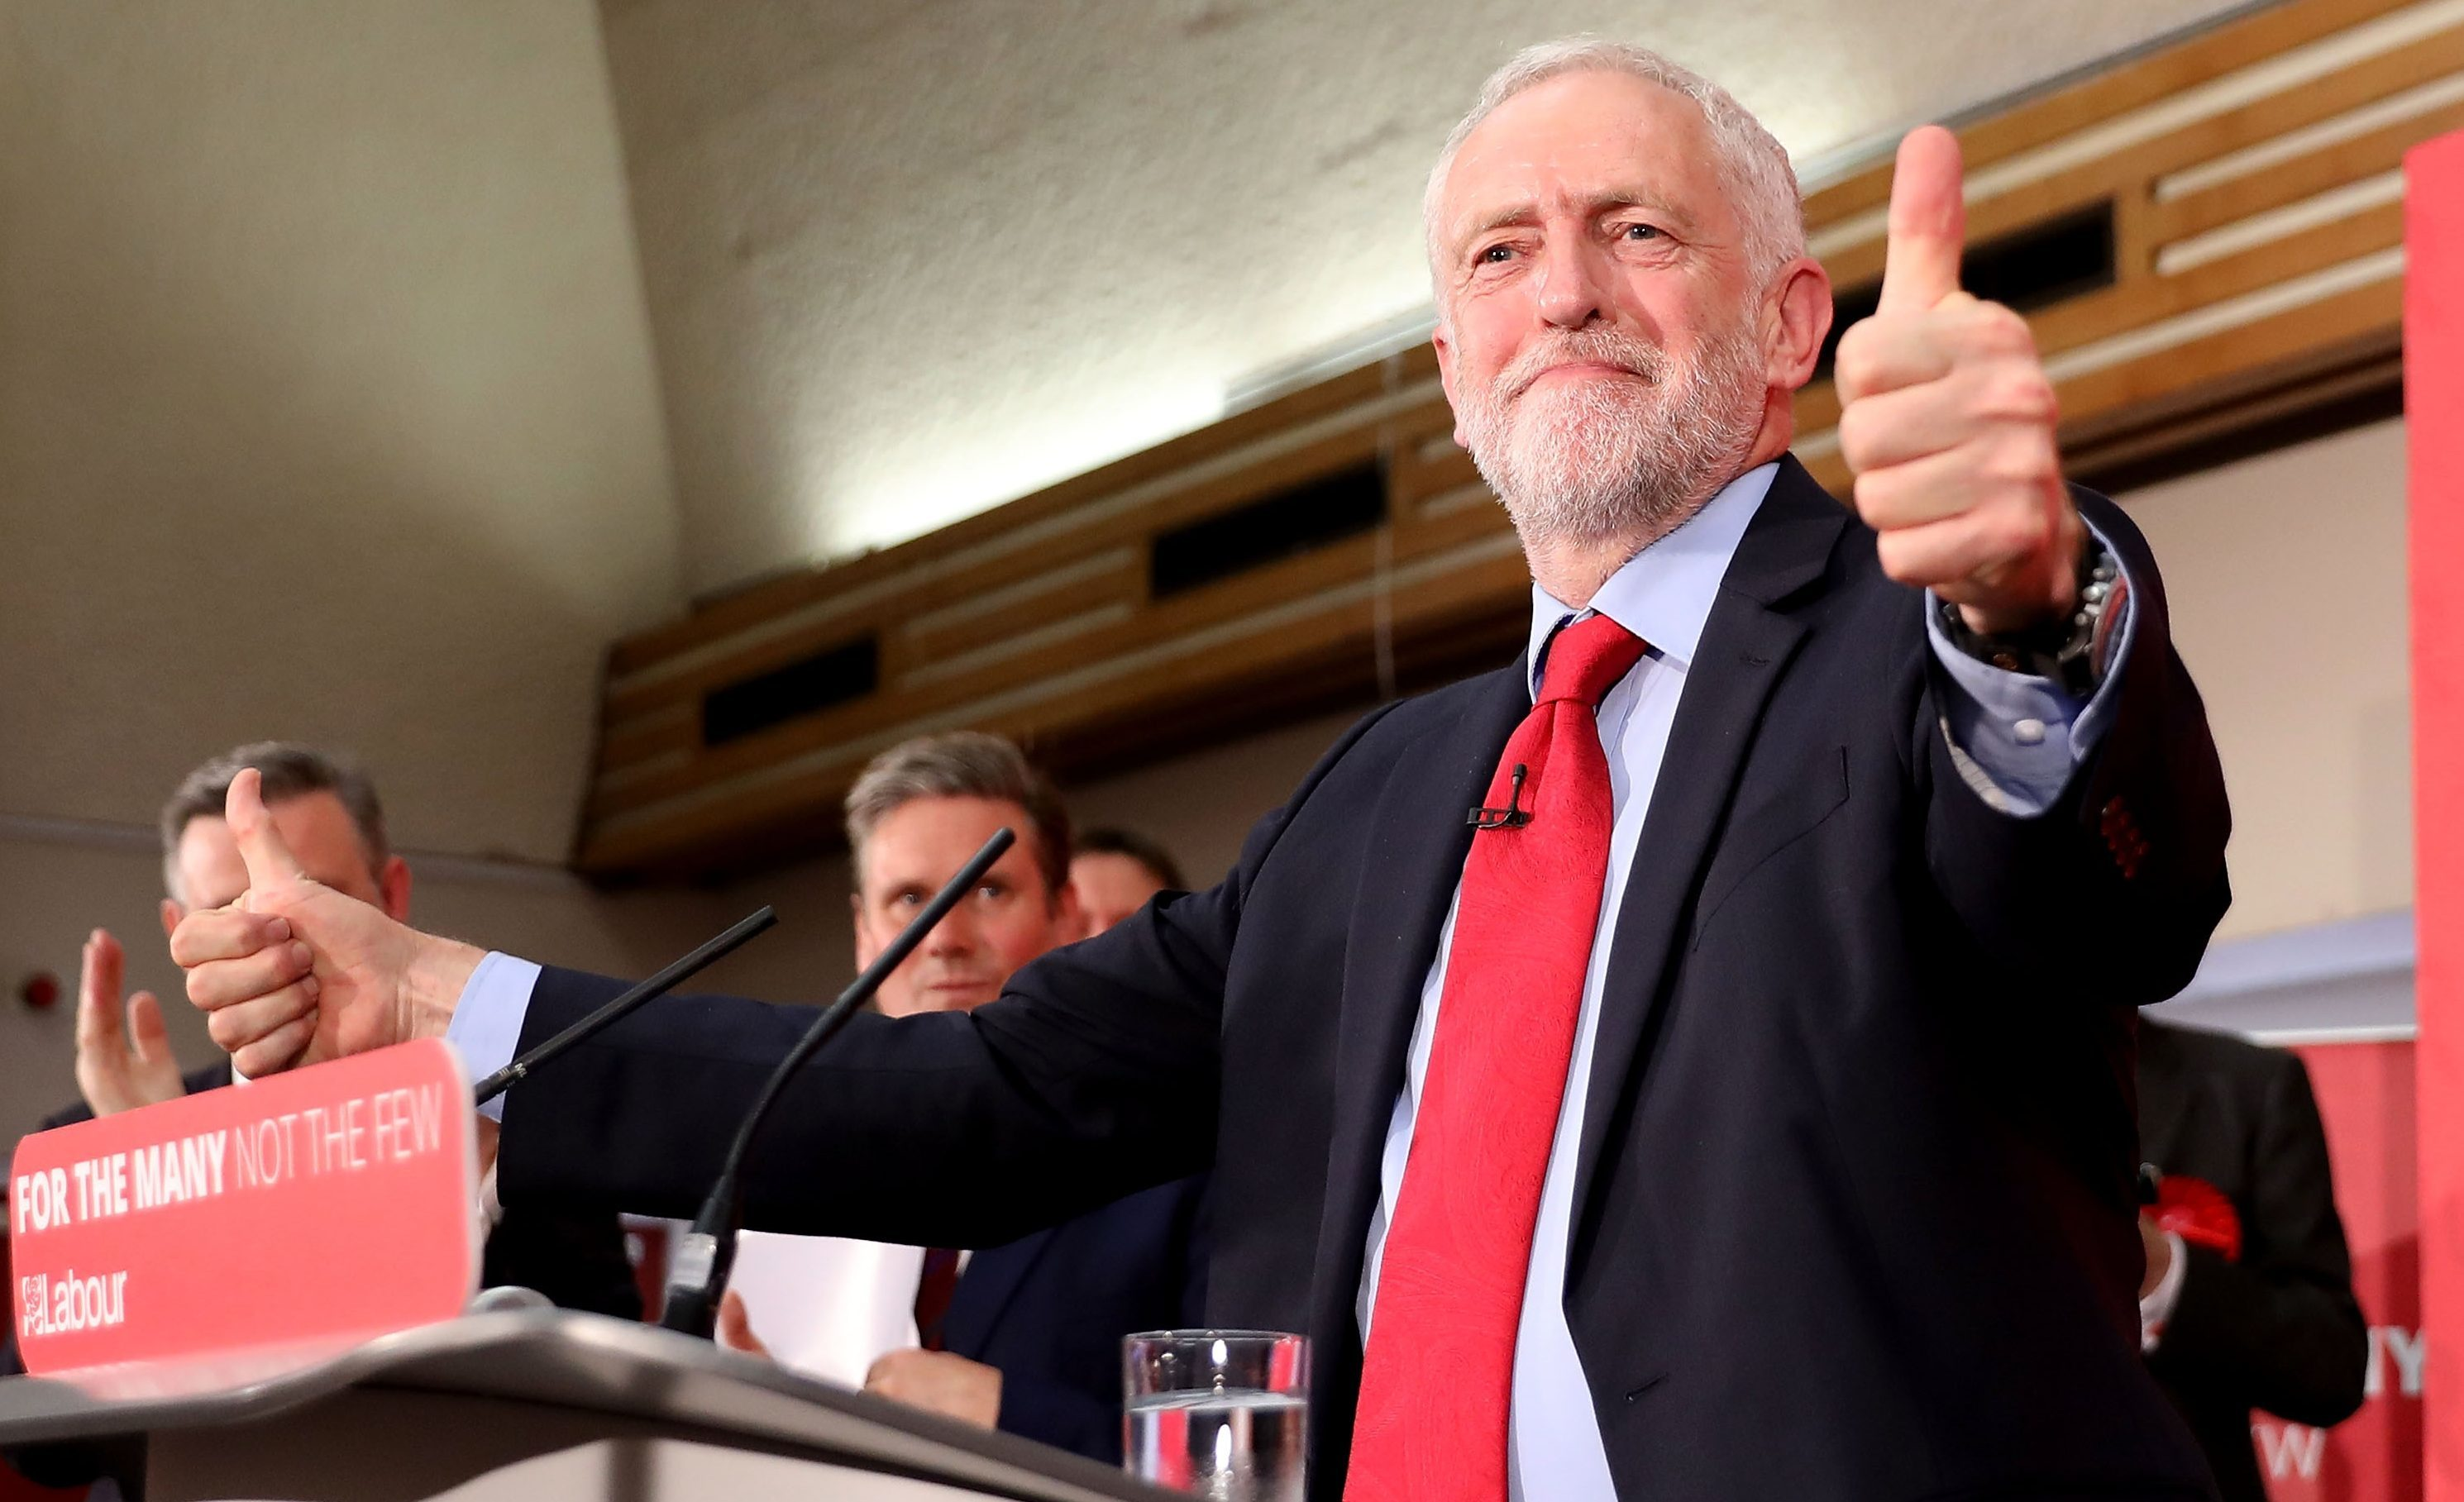 Jeremy Corbyn (Dan Kitwood/Getty Images)